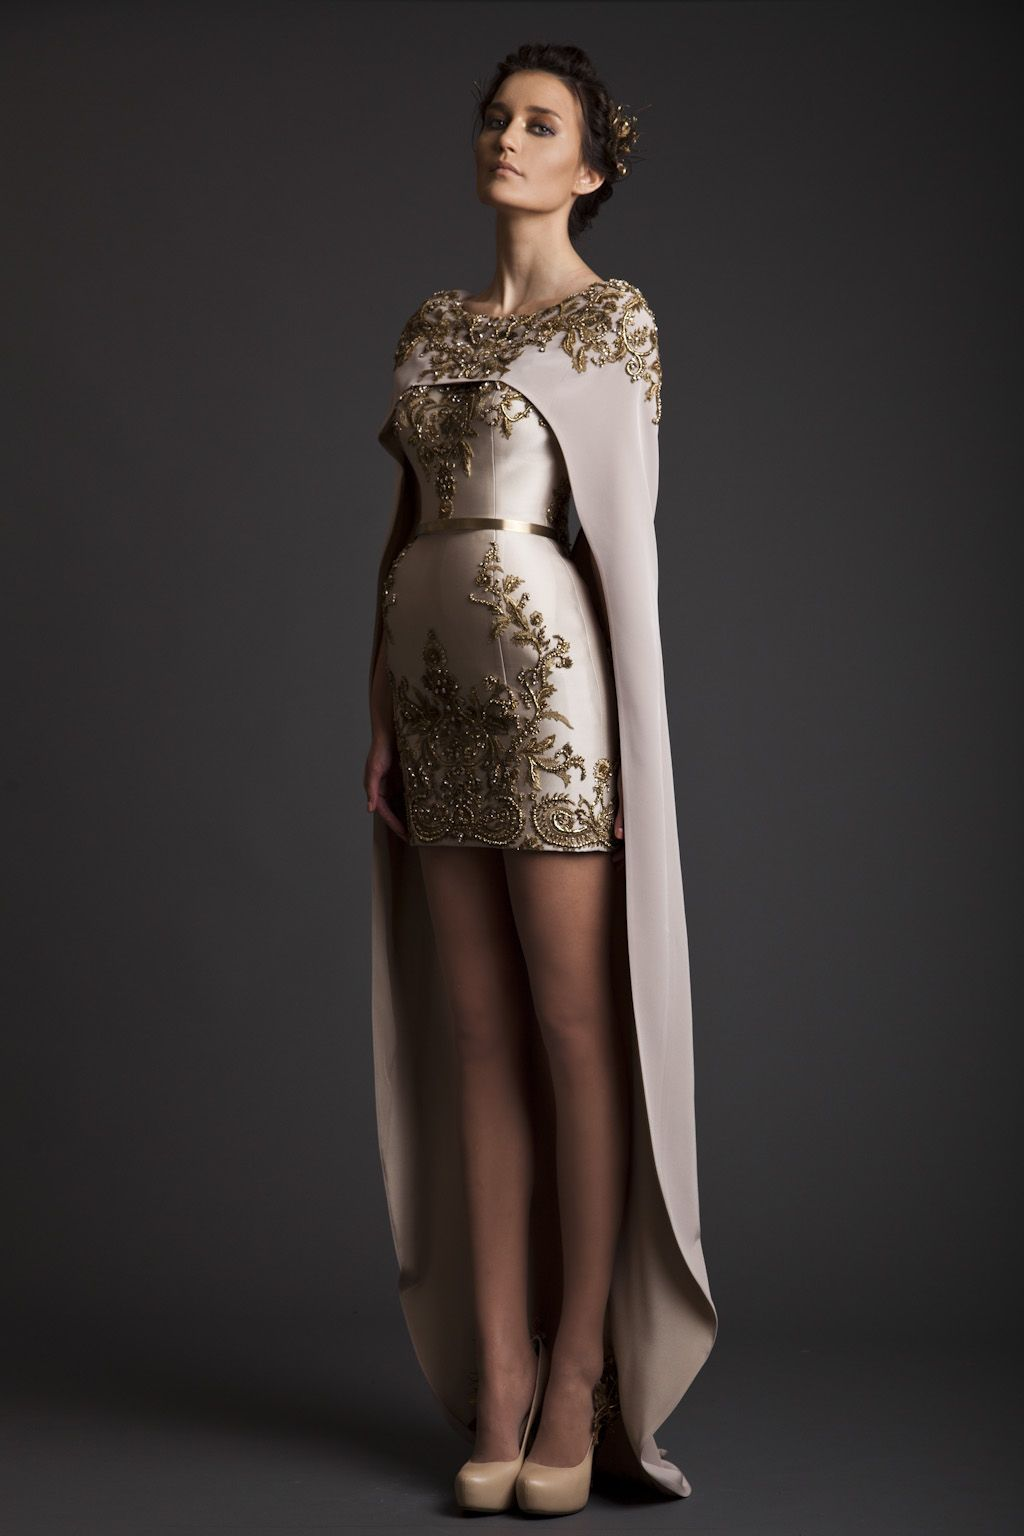 Ss krikor jabotian the dress is amazing not really feeling the